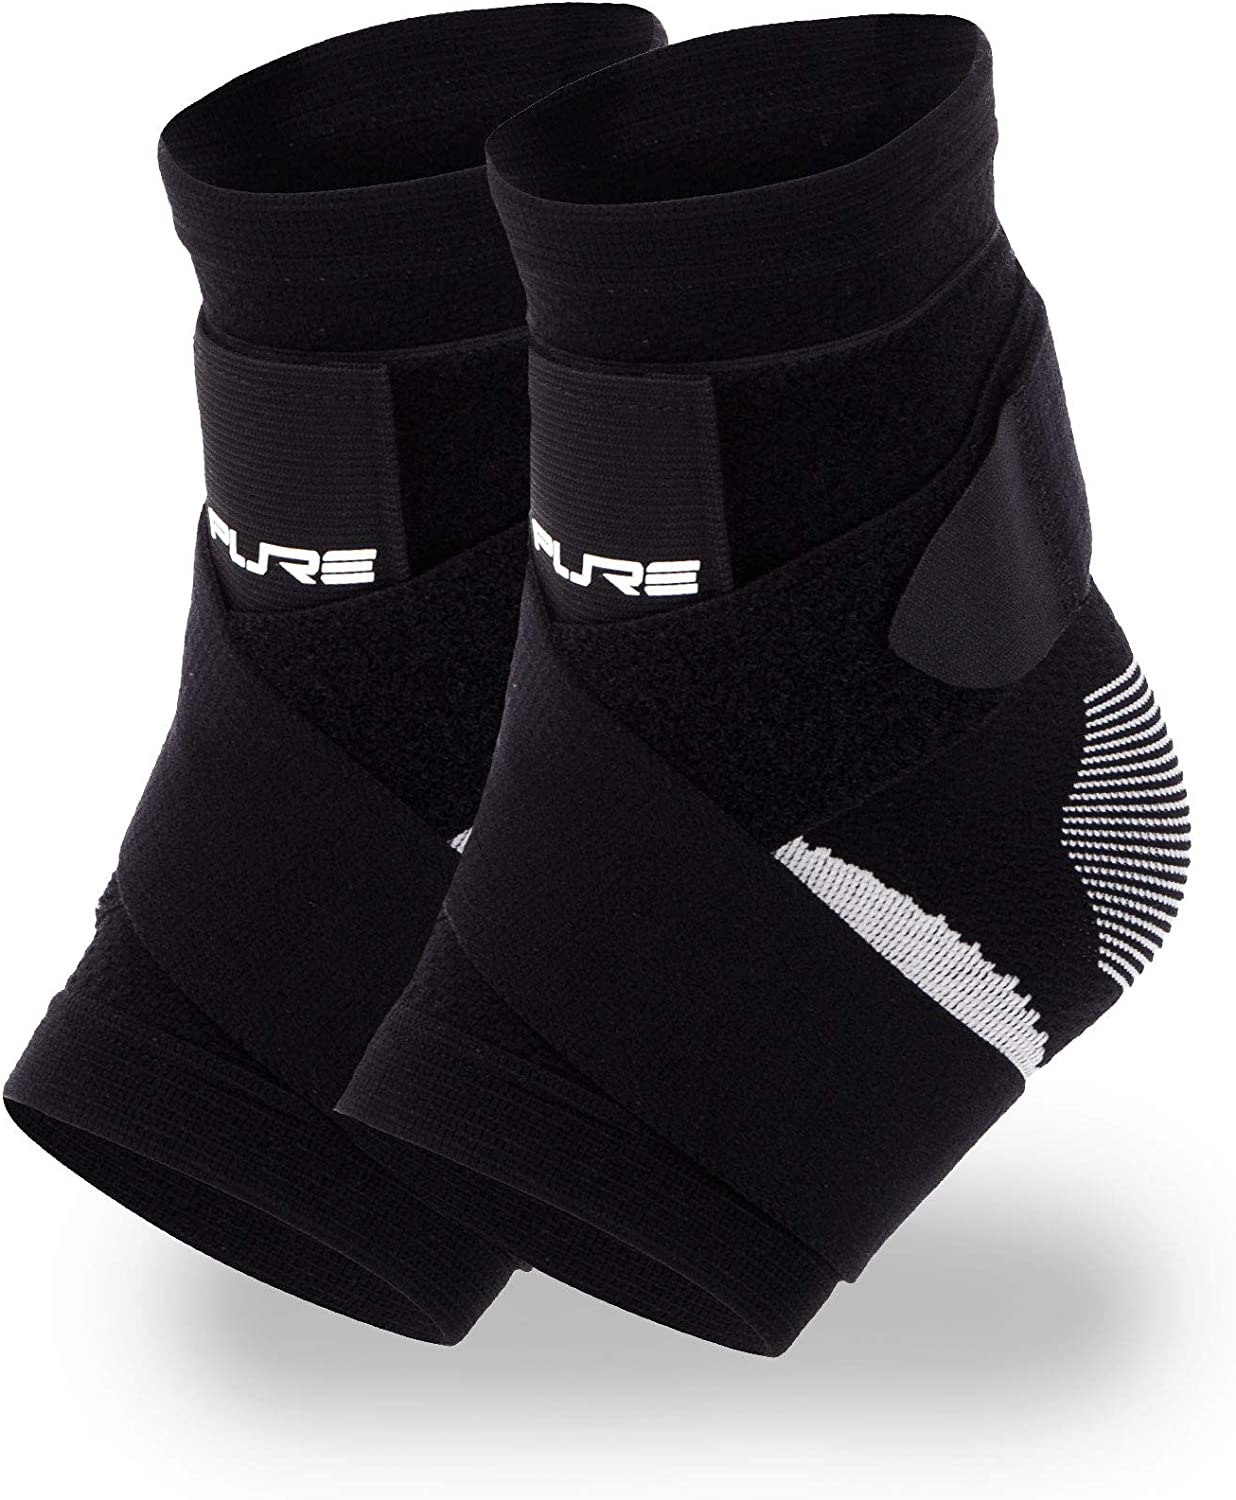 Running Compression Sleeve with Adjustable Straps for Extra Support Basketball Pure Athlete Ultimate Ankle Support Brace Soccer